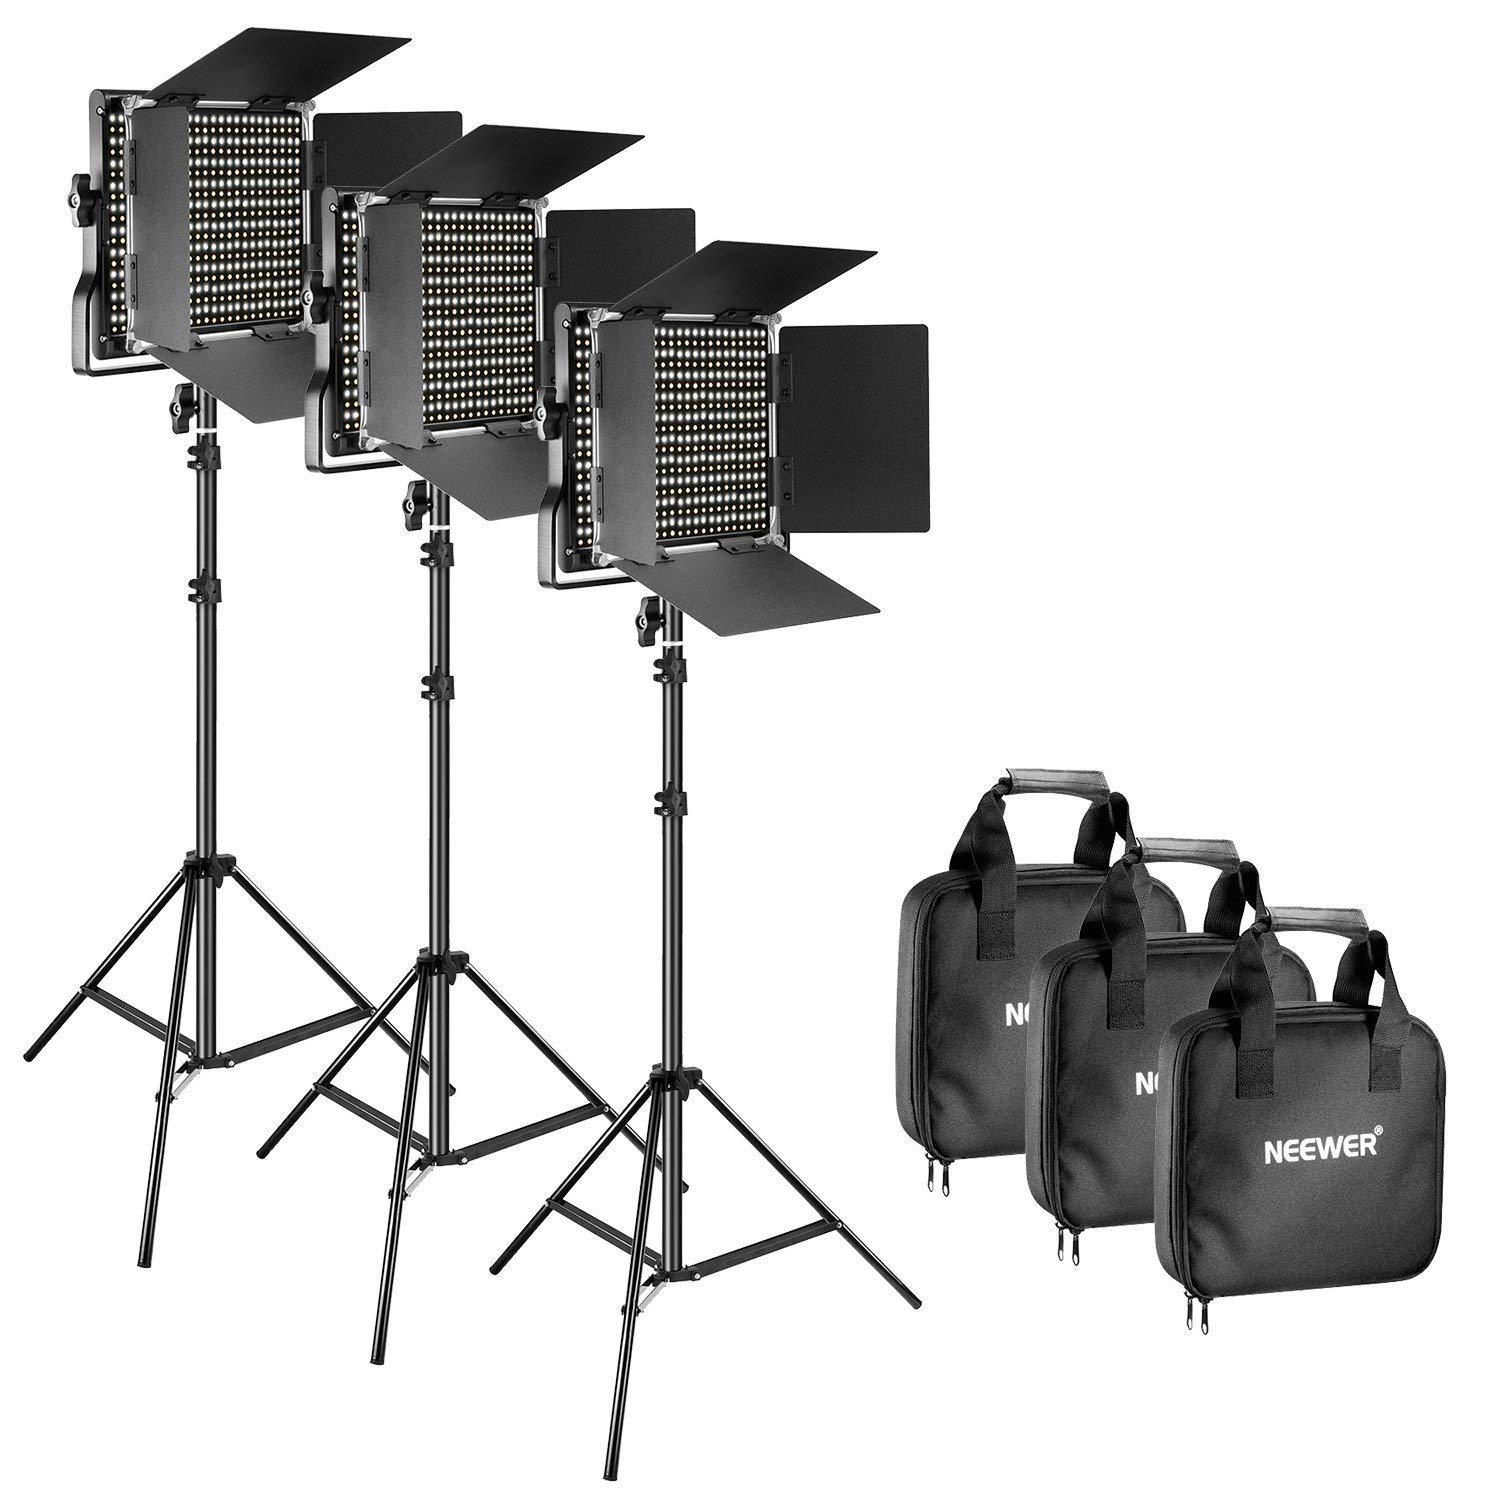 Neewer 3 Piece Bi-Color 660 LED Video Light and Stand Lit, $279,94 on Amazon.